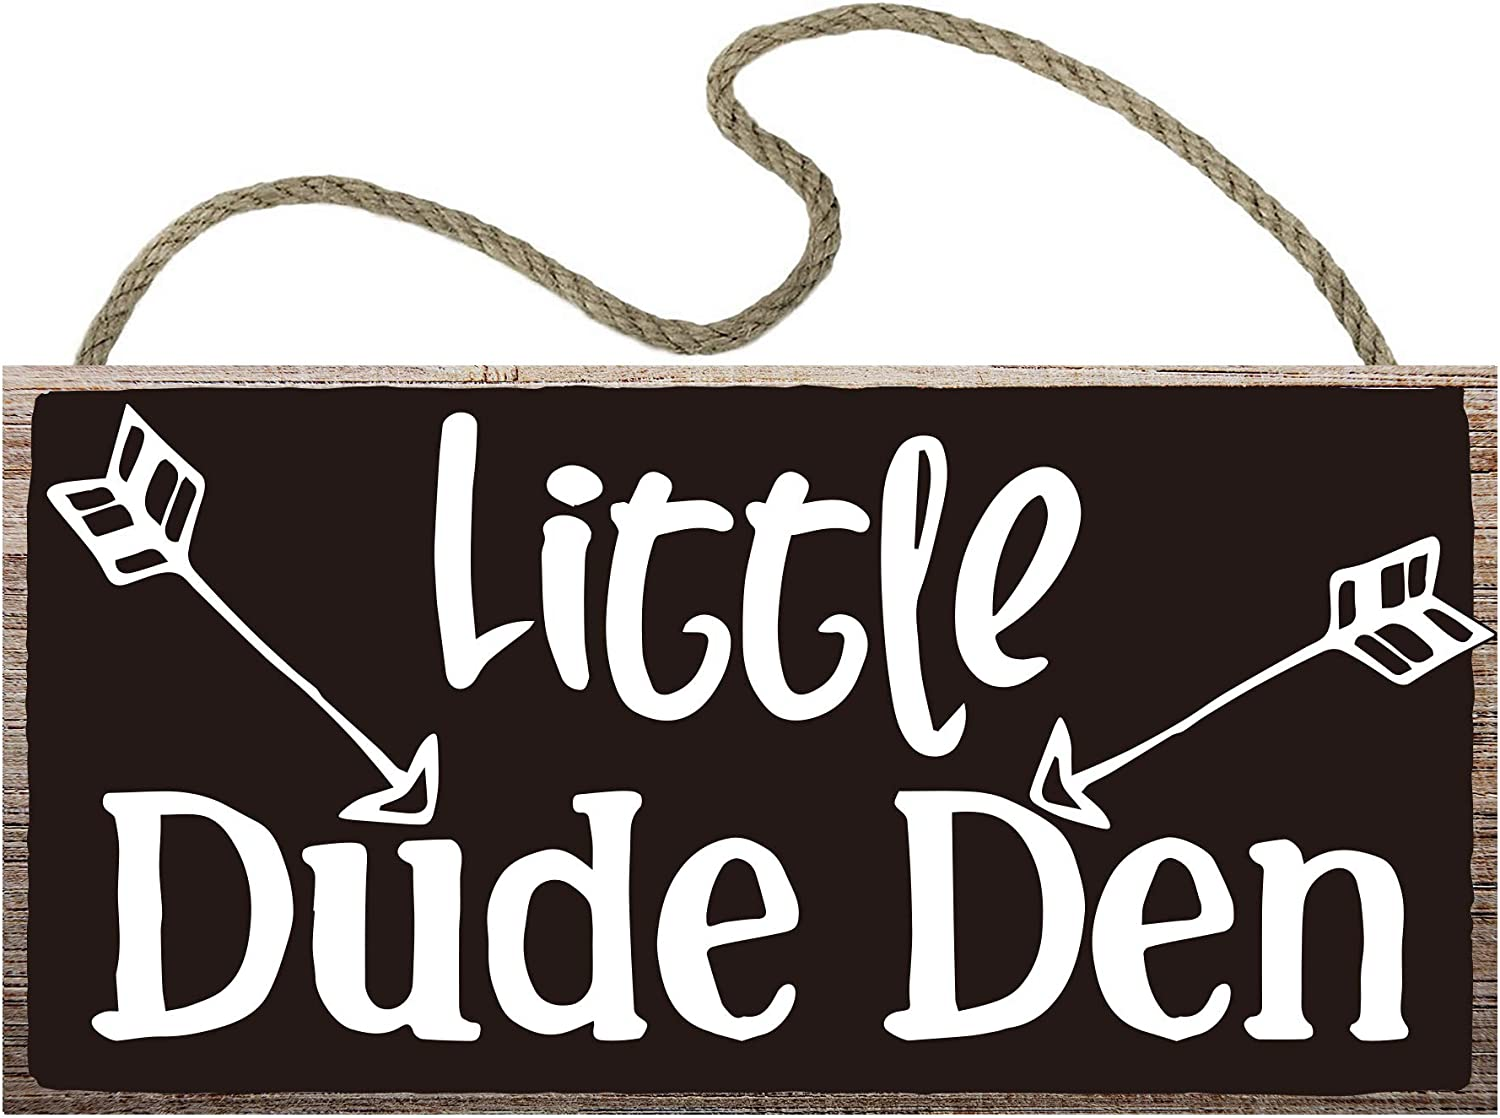 vizuzi Little Dude Den Hanging Boys Room Sign Decor - 12 x 6, Wood Sign Wall Art Decor Gift for Boy or Kids.